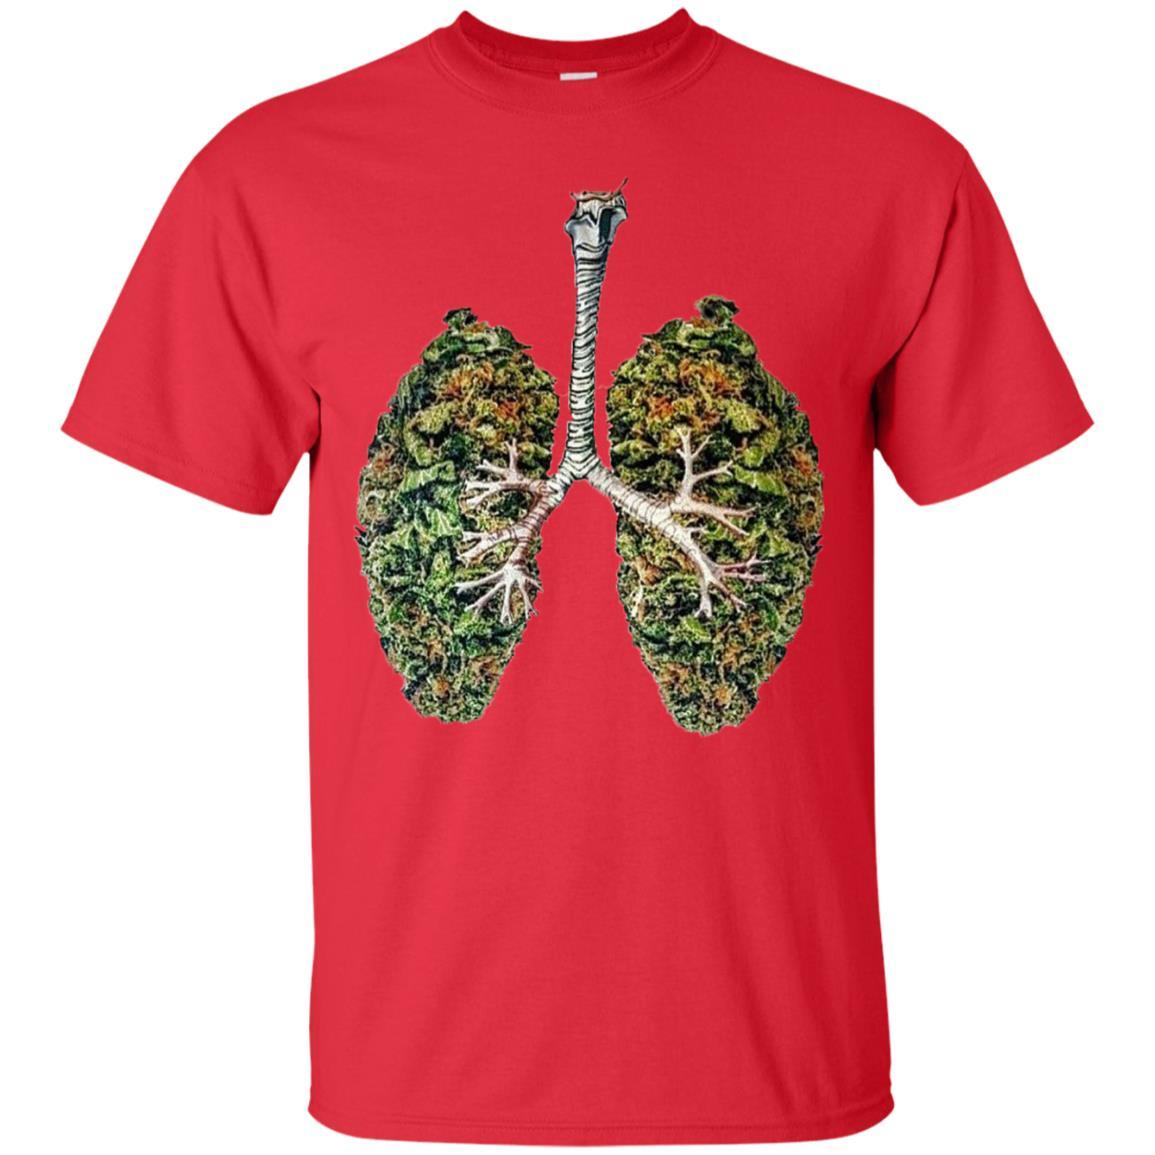 My Weed Lungs T-Shirt Red / 5XL